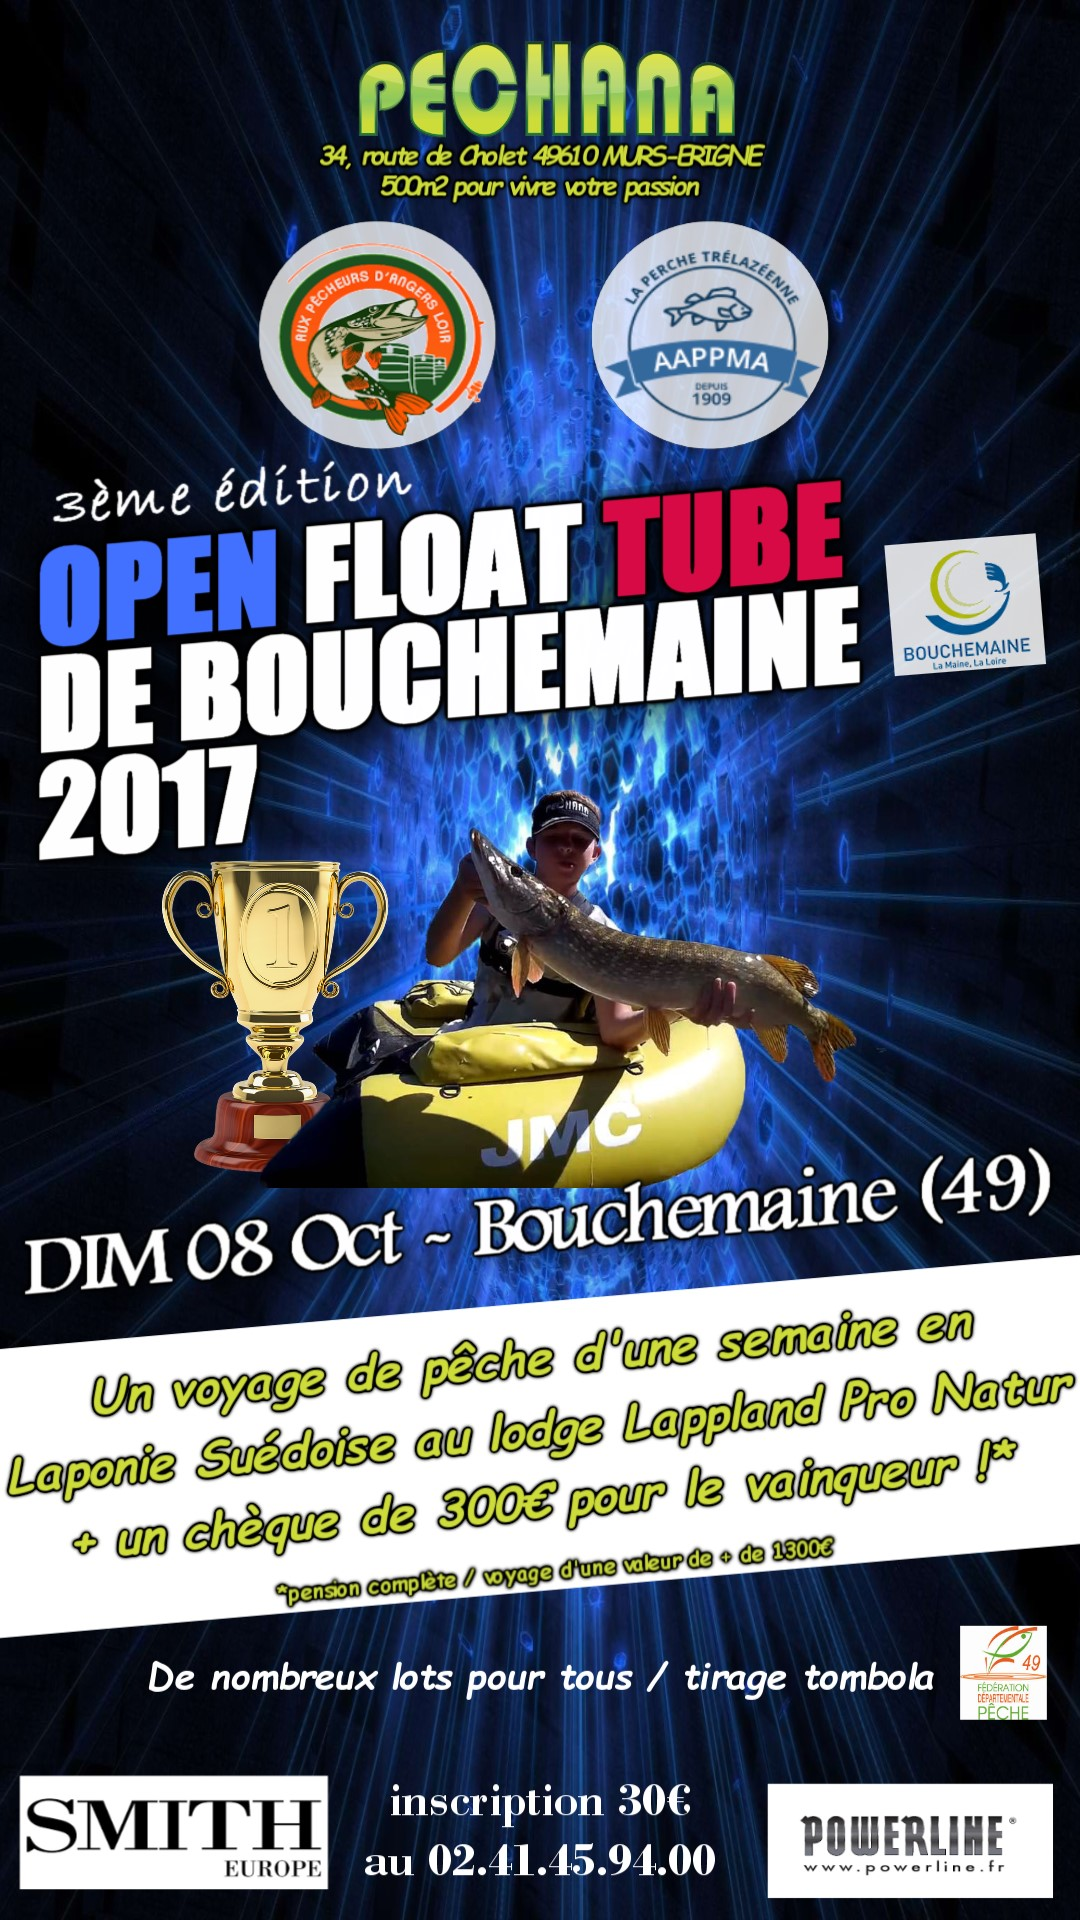 open float tube bouchemaine 8 oct 2017